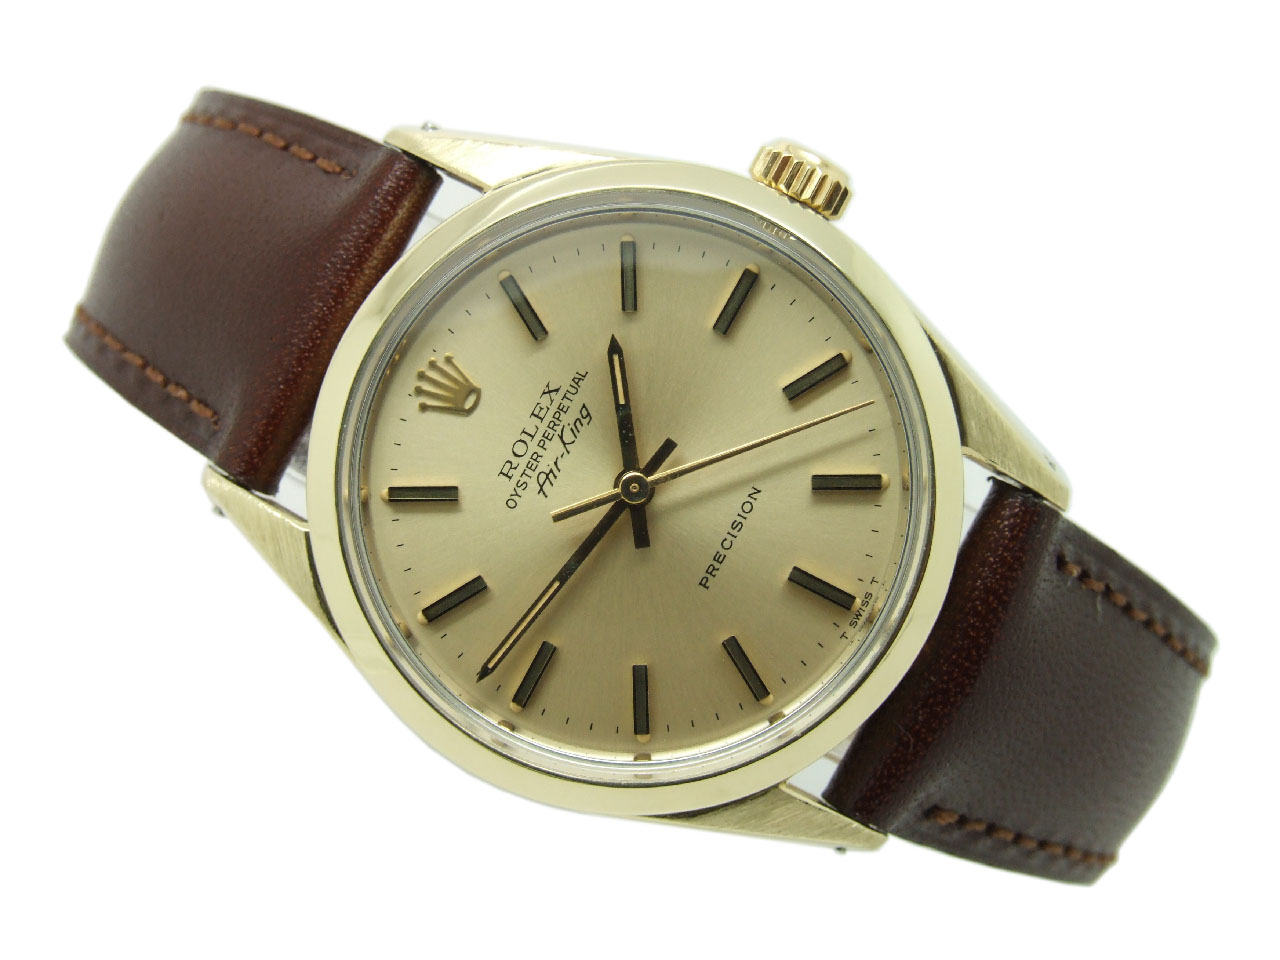 Sold 1971 Rolex 18ct Gold Capped Oyster Perpetual Air King Vw664 Vintage Winders